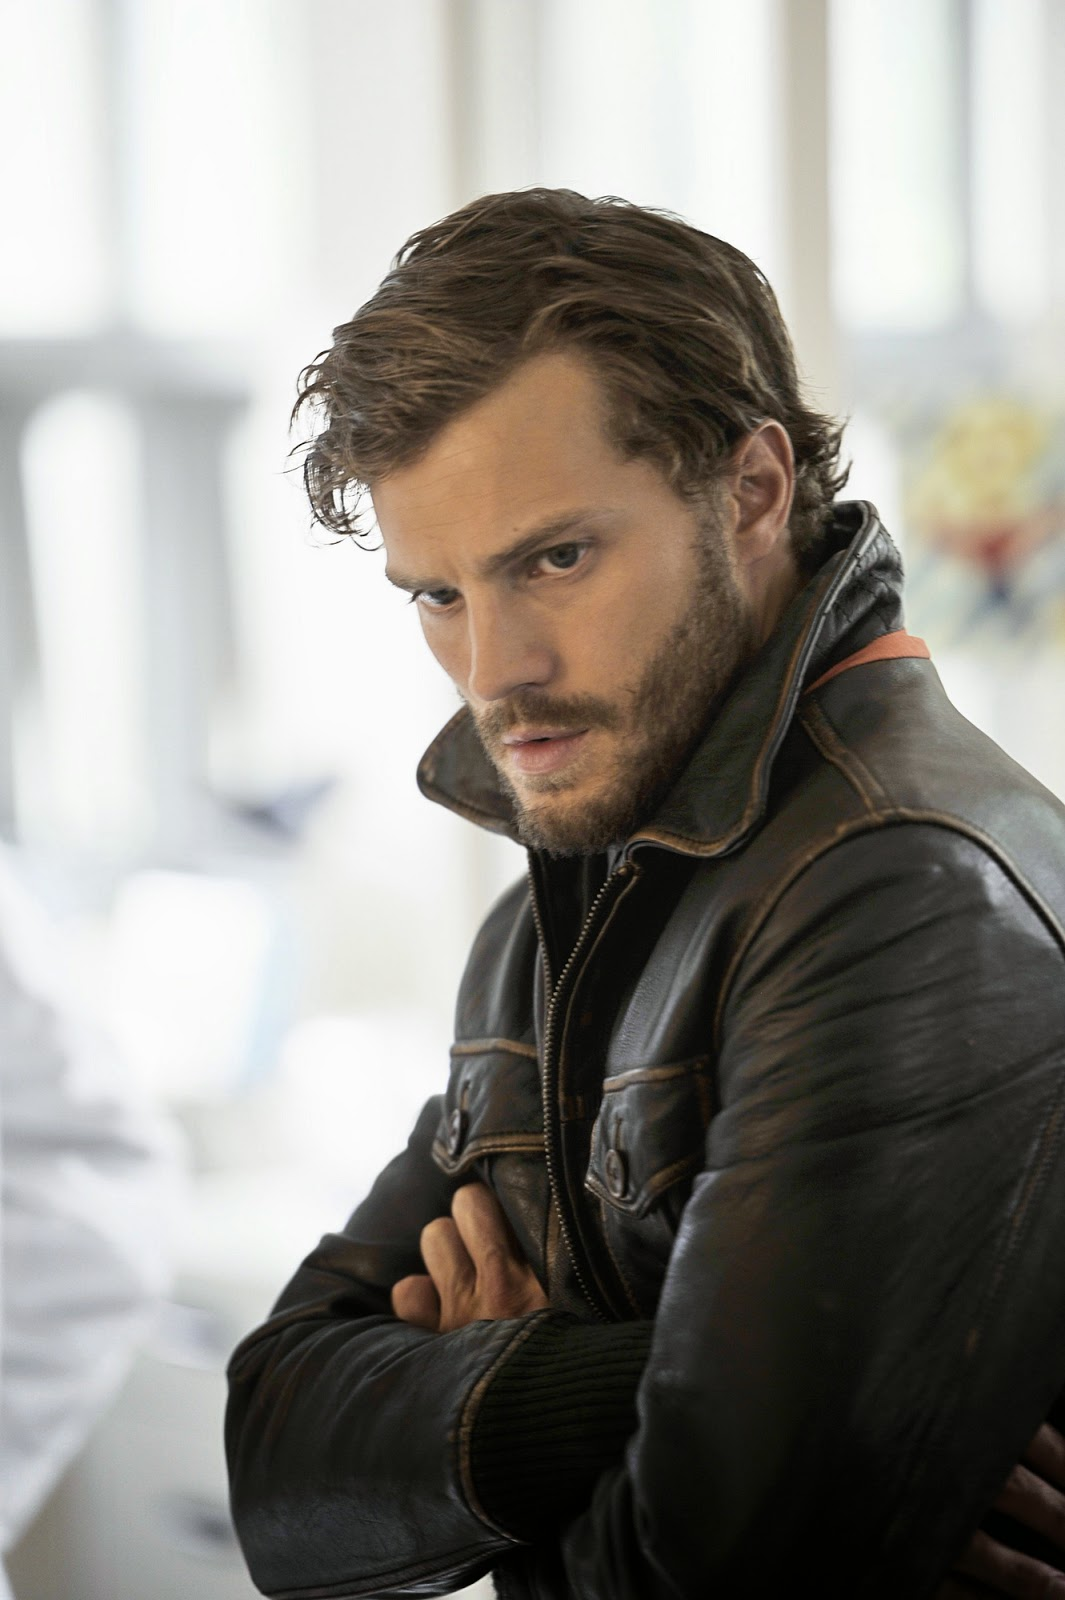 Jamie dornan once upon a time